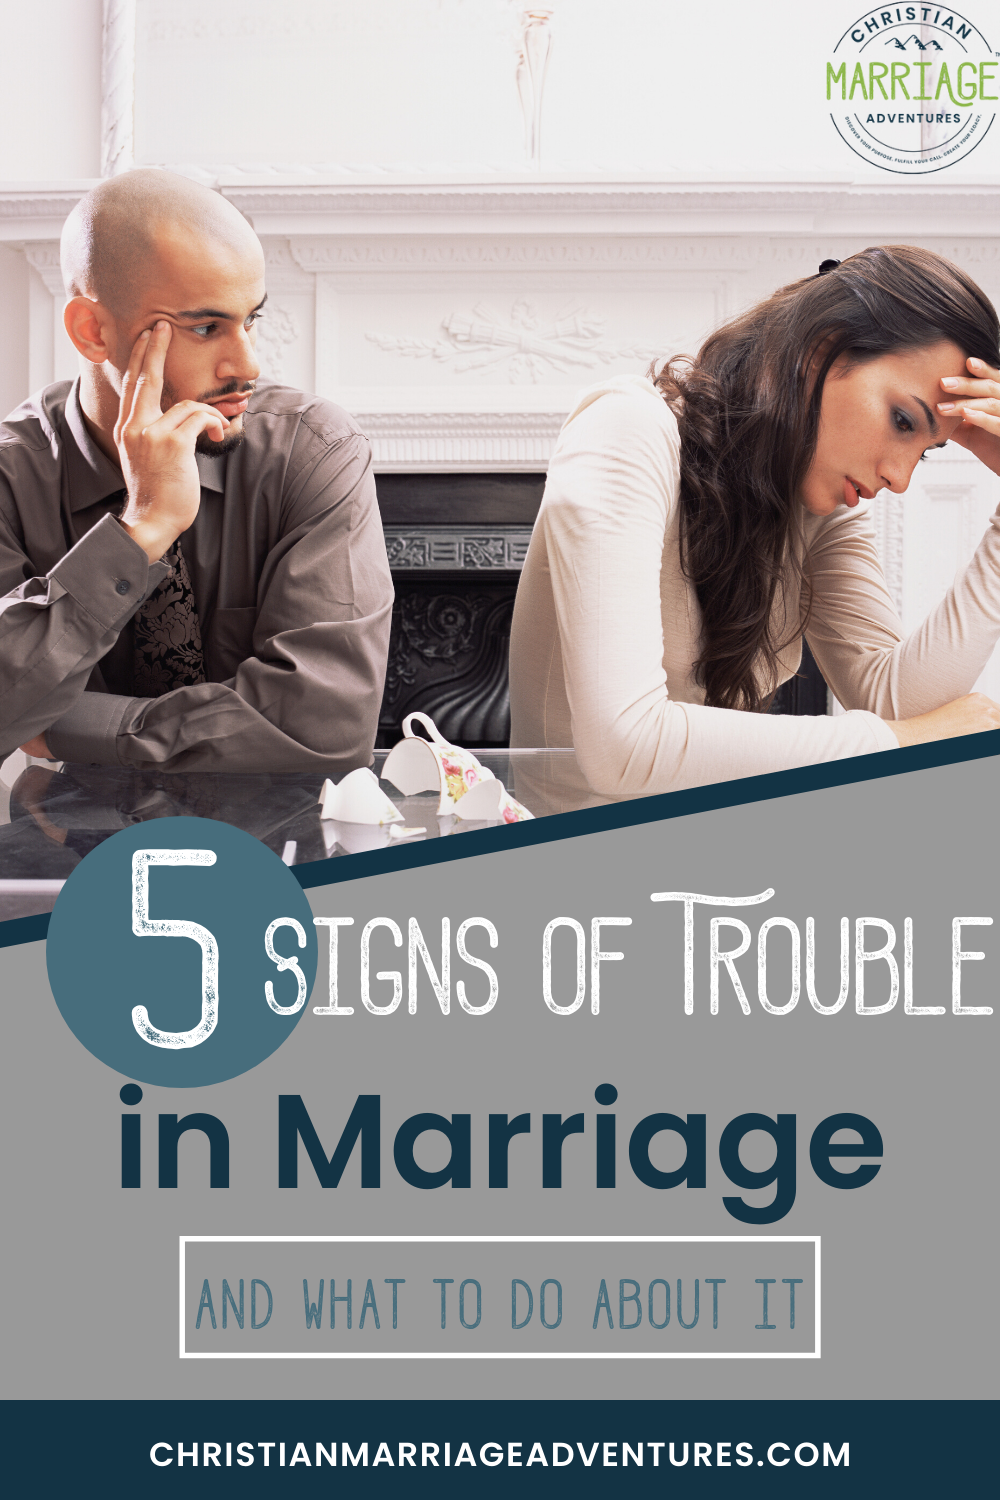 5 signs of trouble in marriage - and what to do about it.